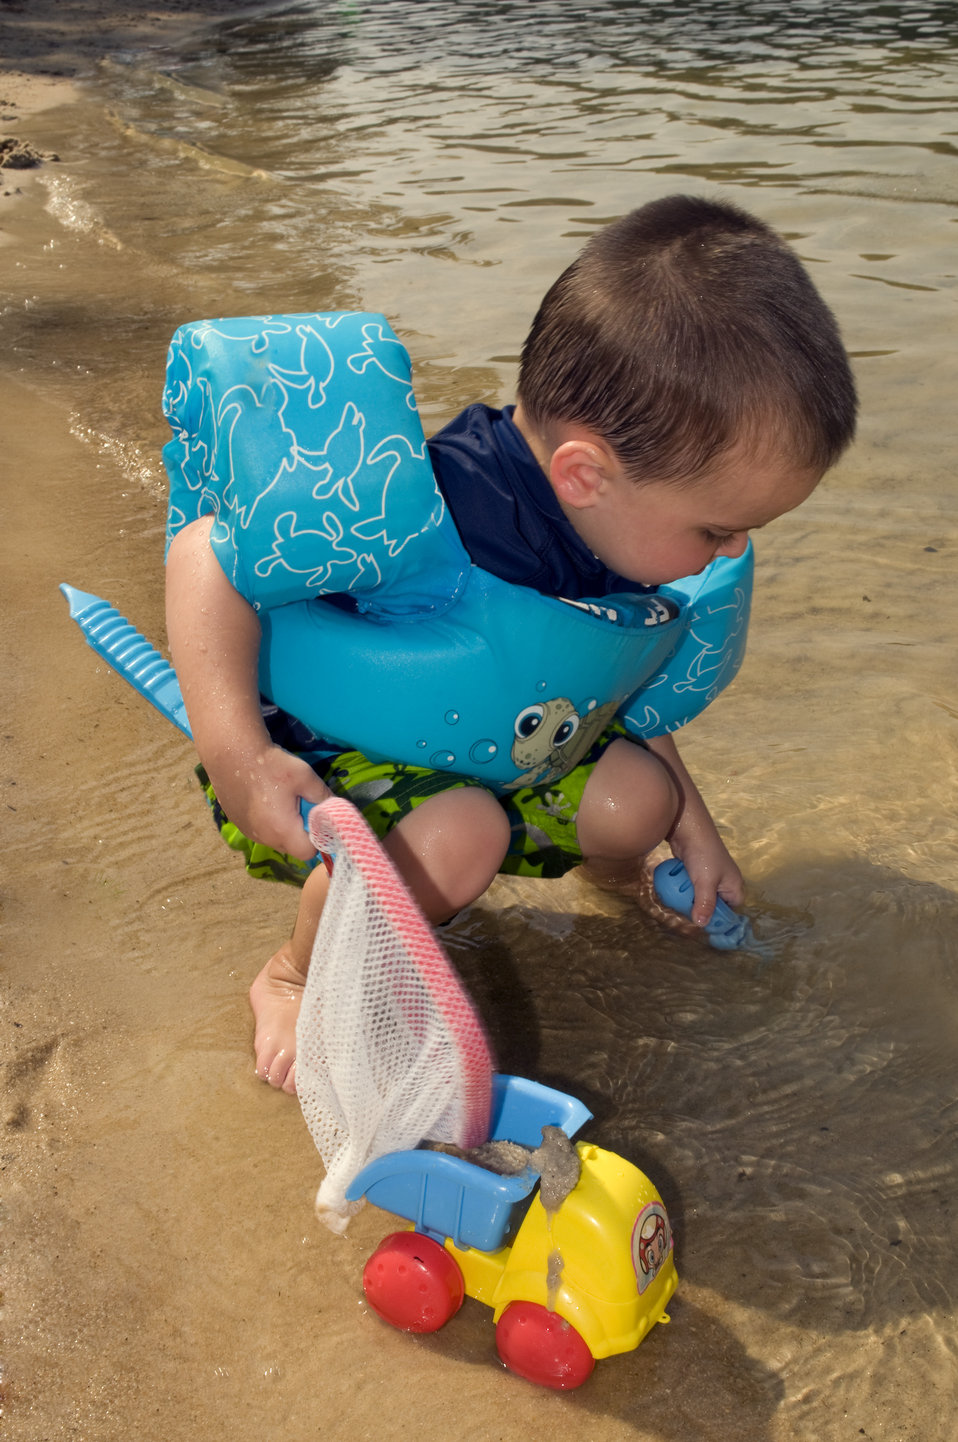 This young boy was kneeling at the water's edge holding a toy fishnet with his right hand, and a plastic strainer with his left, which he wa